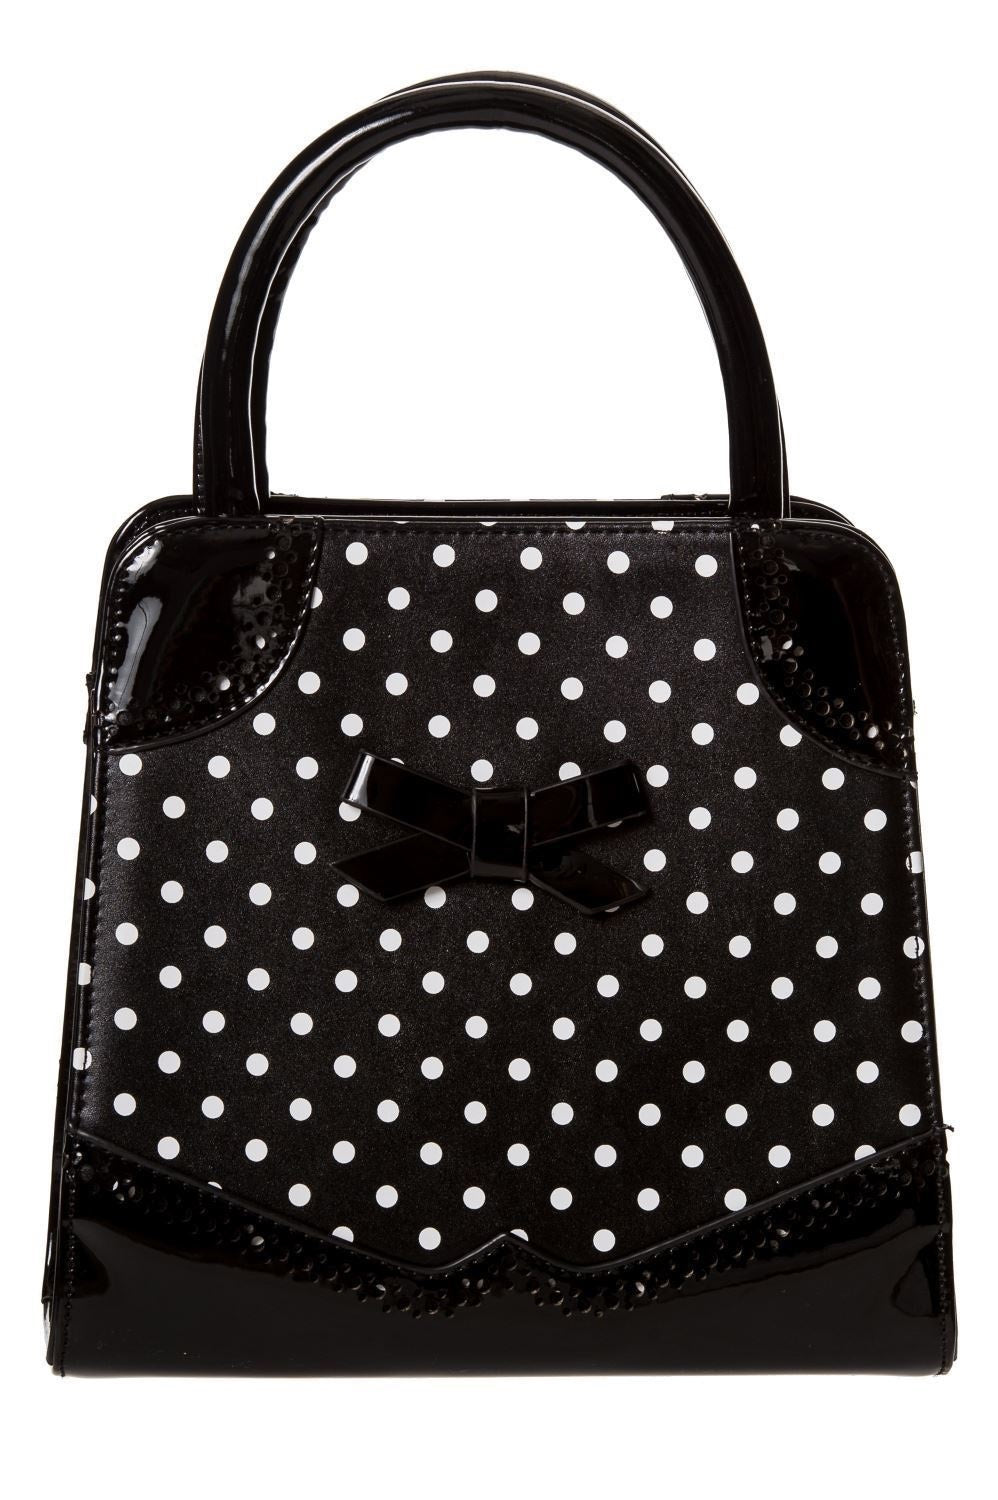 Black and White Polka Dots Vintage Look Handbag